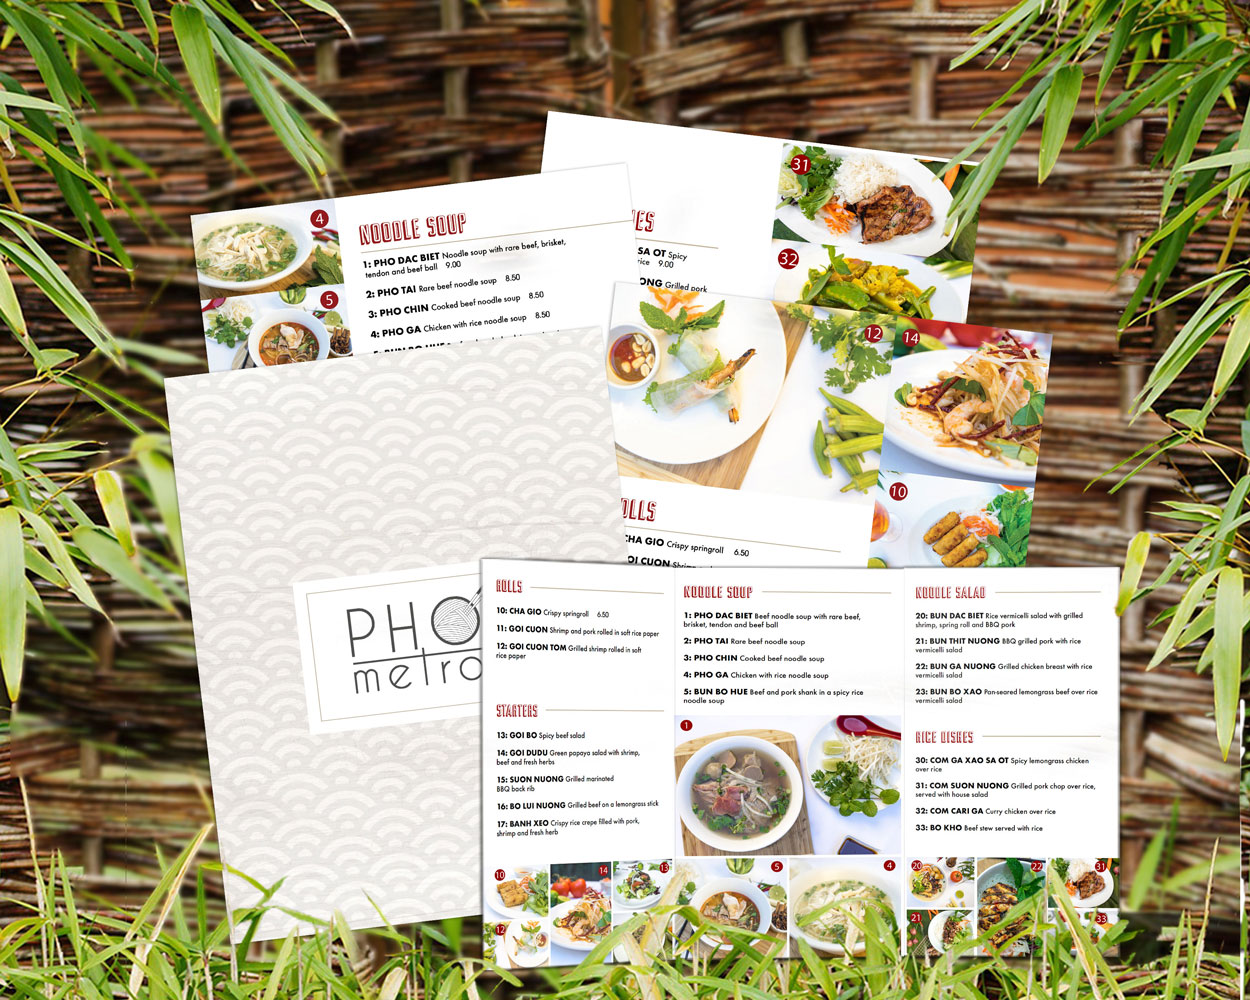 Graphic Design for dine-in and takeout Pho menus